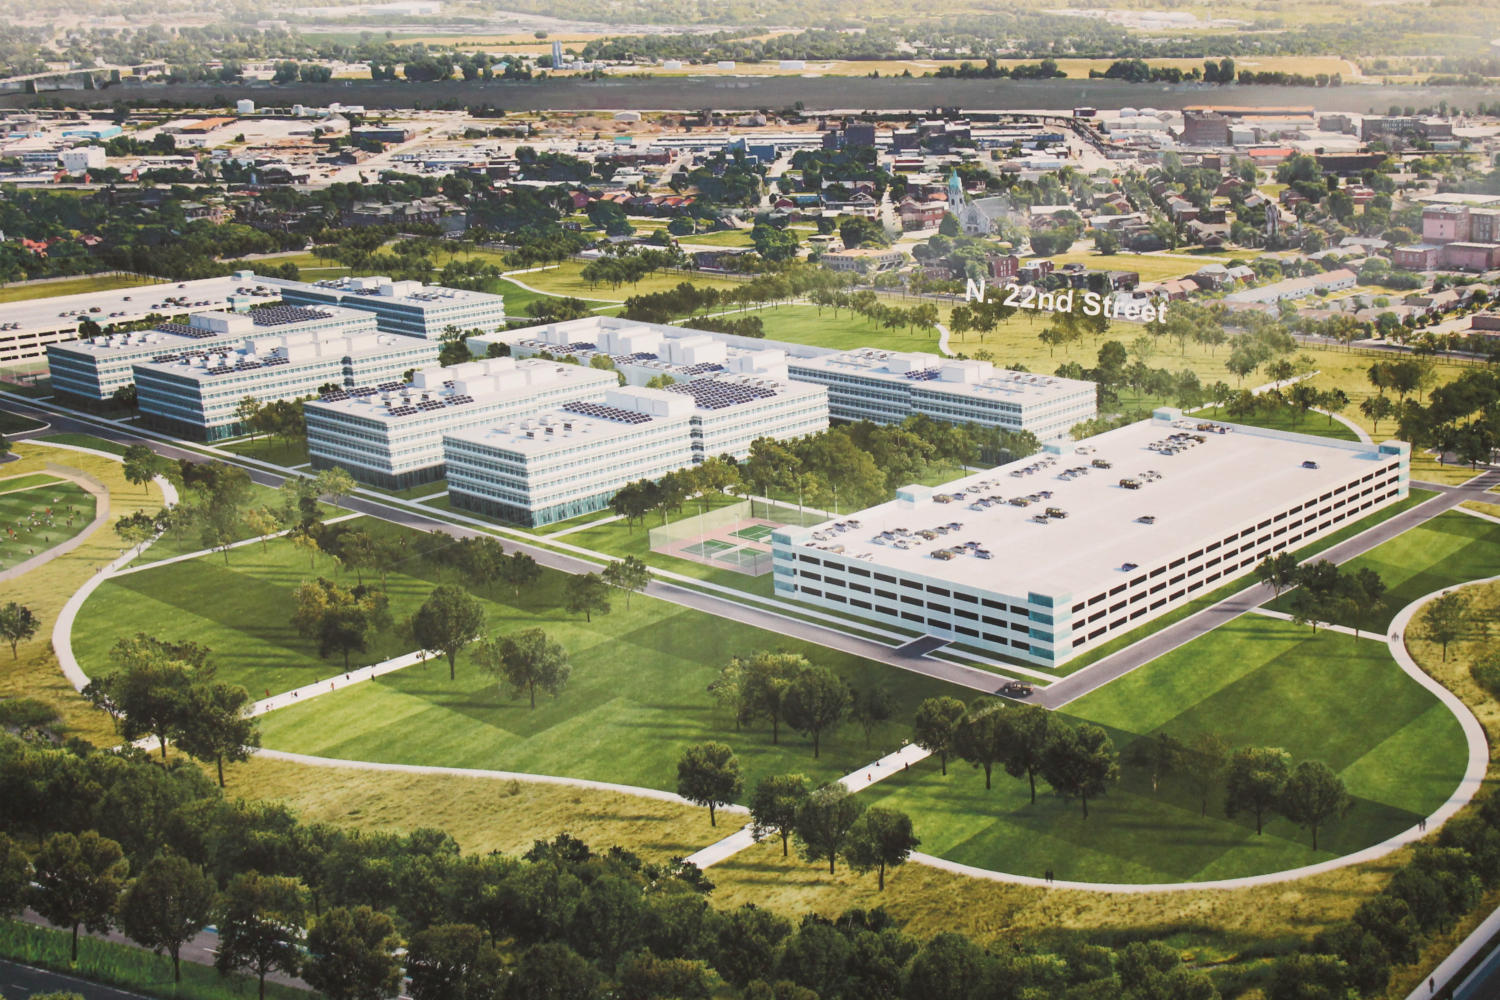 A Rendering Of What The New Nga Campus Might Look Like The National Geospatial Intelligence Agency